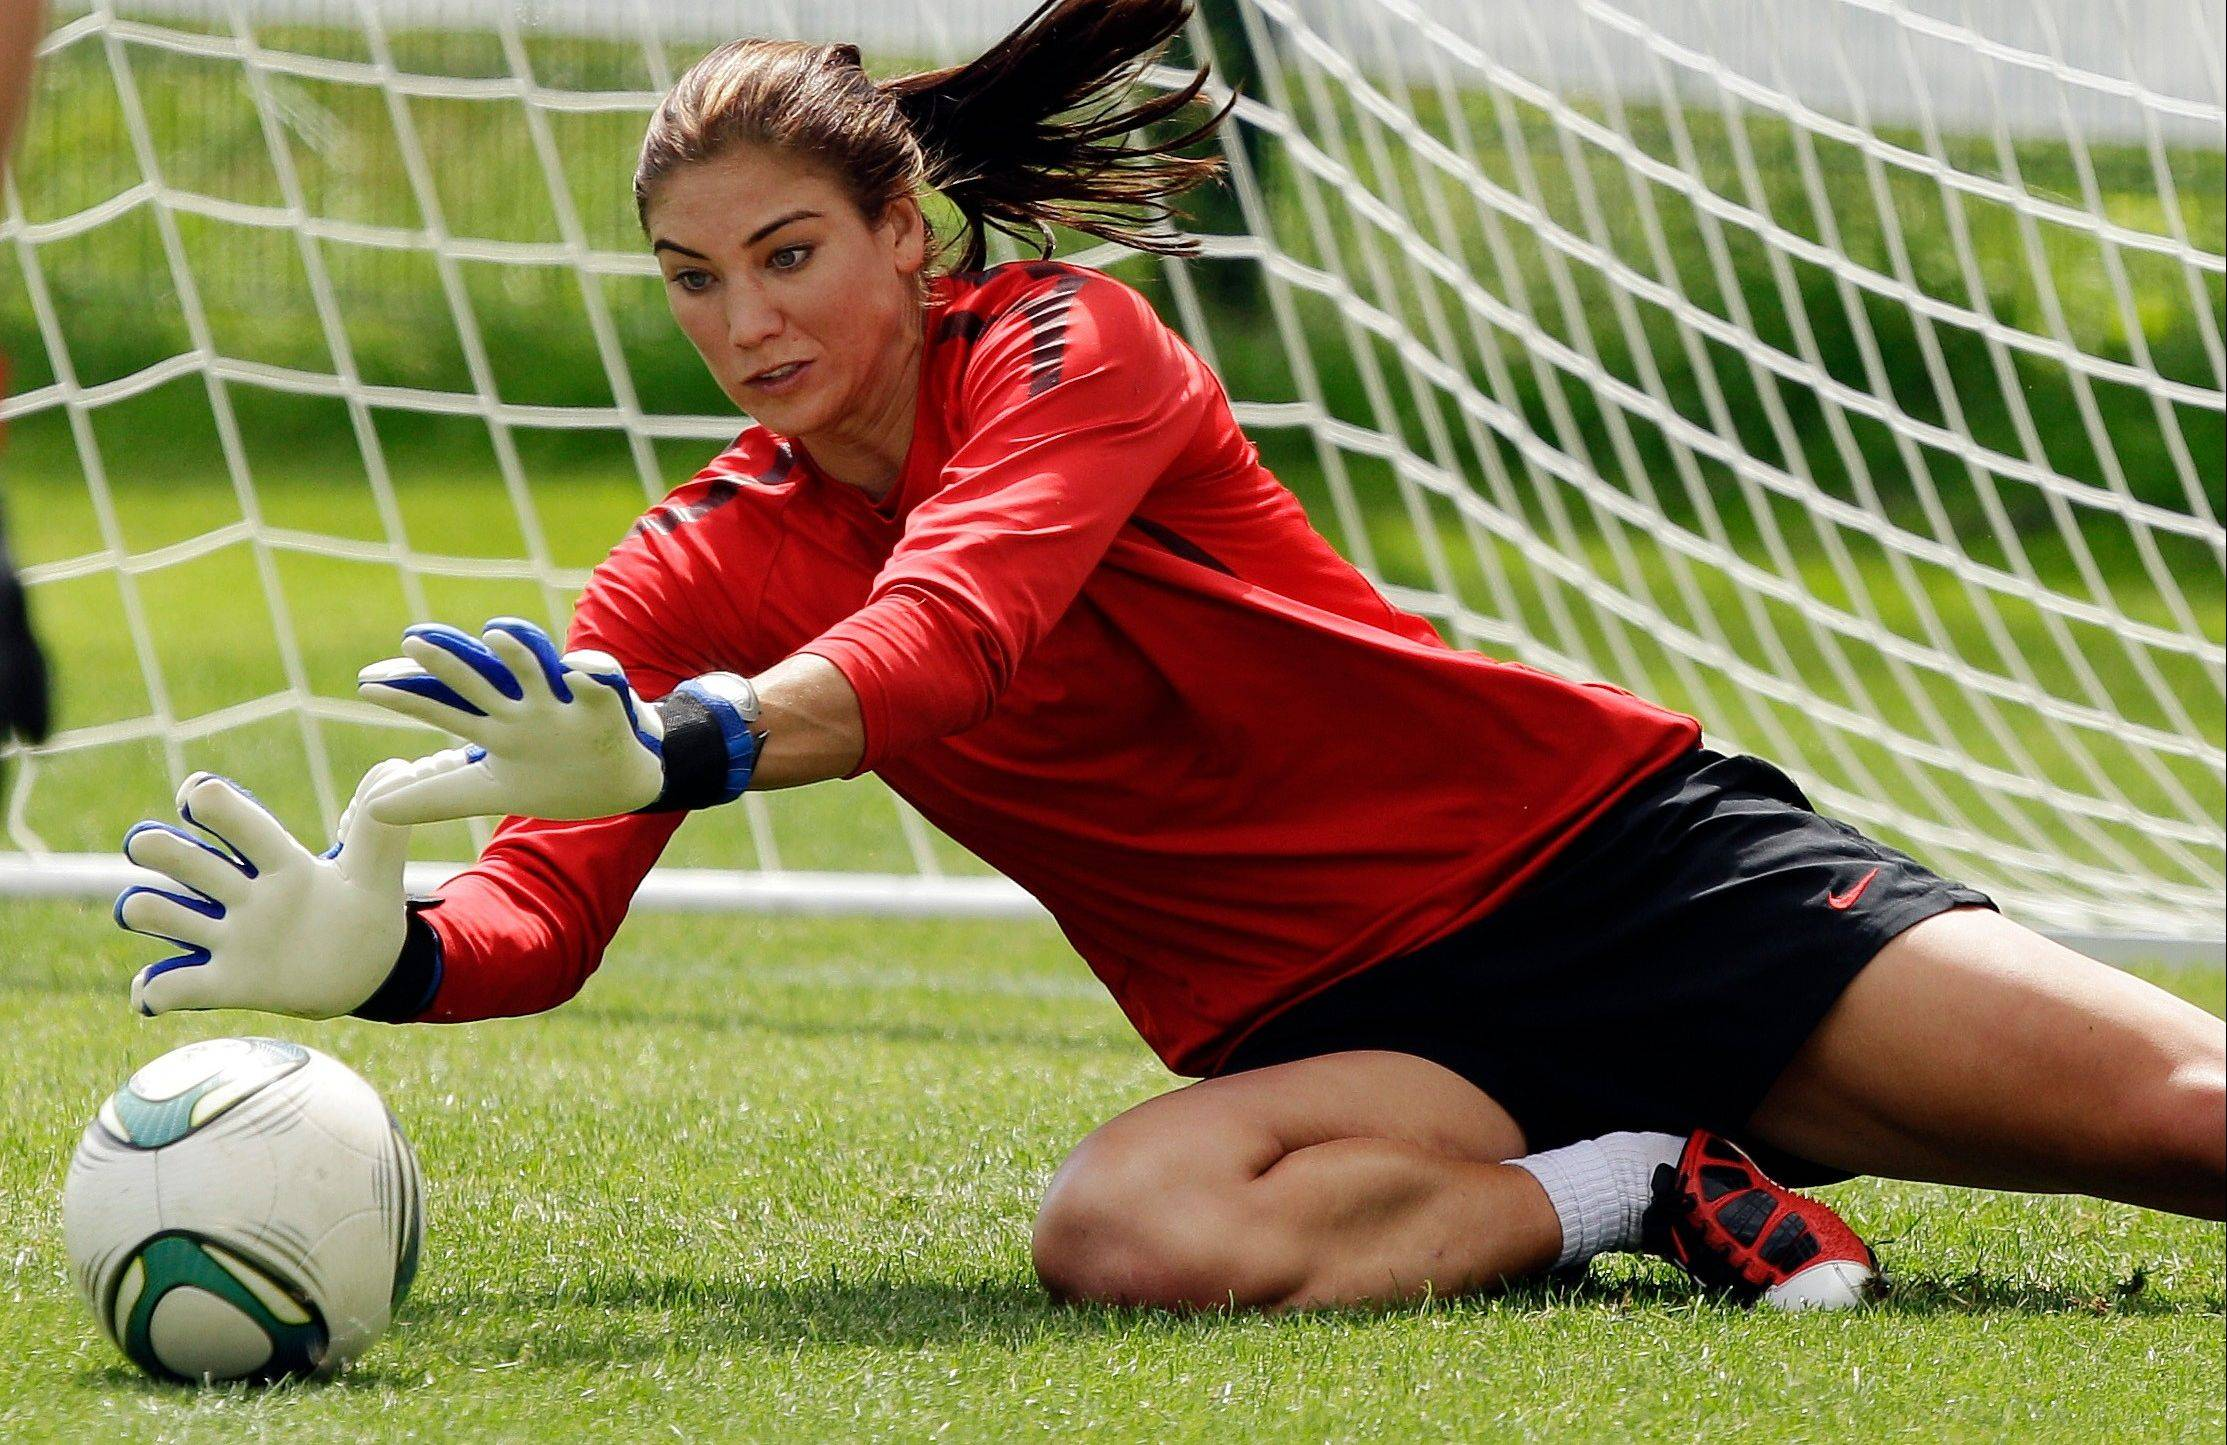 United States goalkeeper Hope Solo stops a shot during practice before the Women�s World Cup in Dresden, Germany.